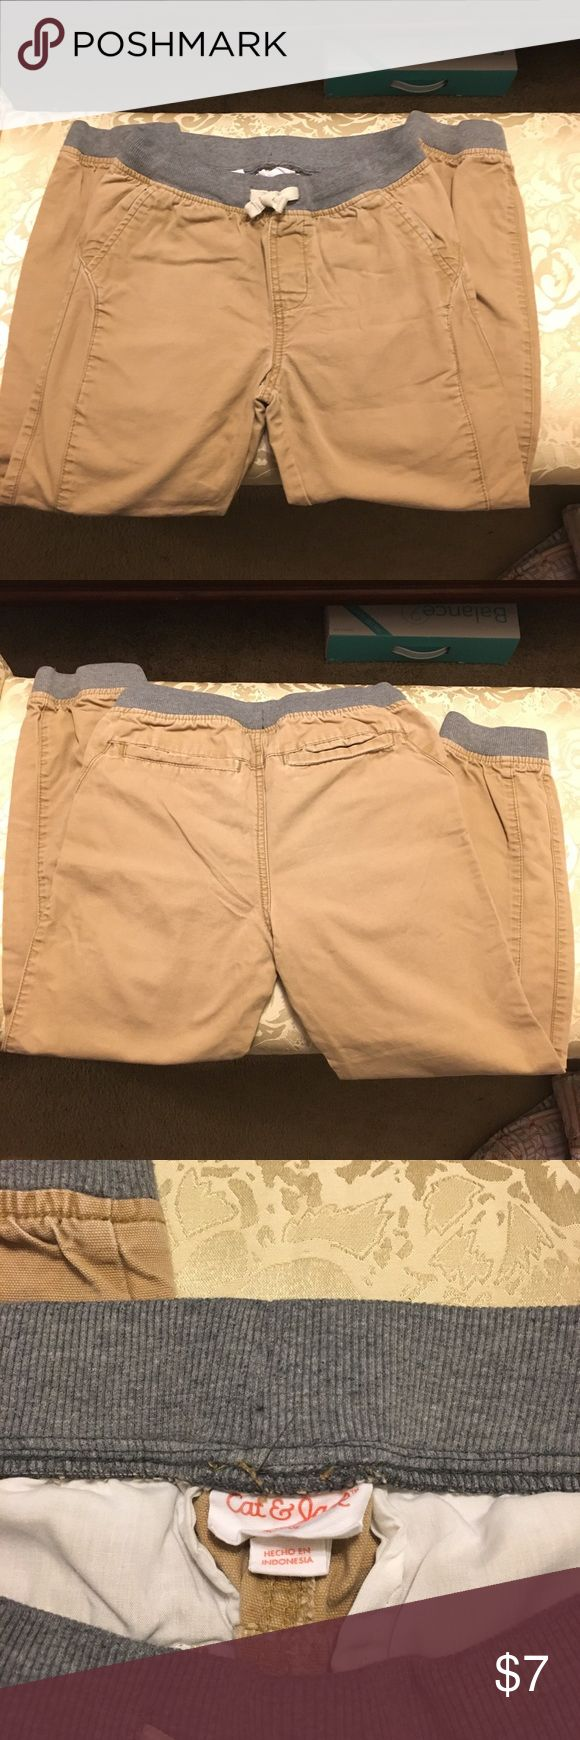 Cat & Jack khaki joggers Cat & Jack khaki jogger pants  Size 8/10 boys  Used but good condition  Tiny spot on knee see pic Cat & Jack Bottoms Sweatpants & Joggers